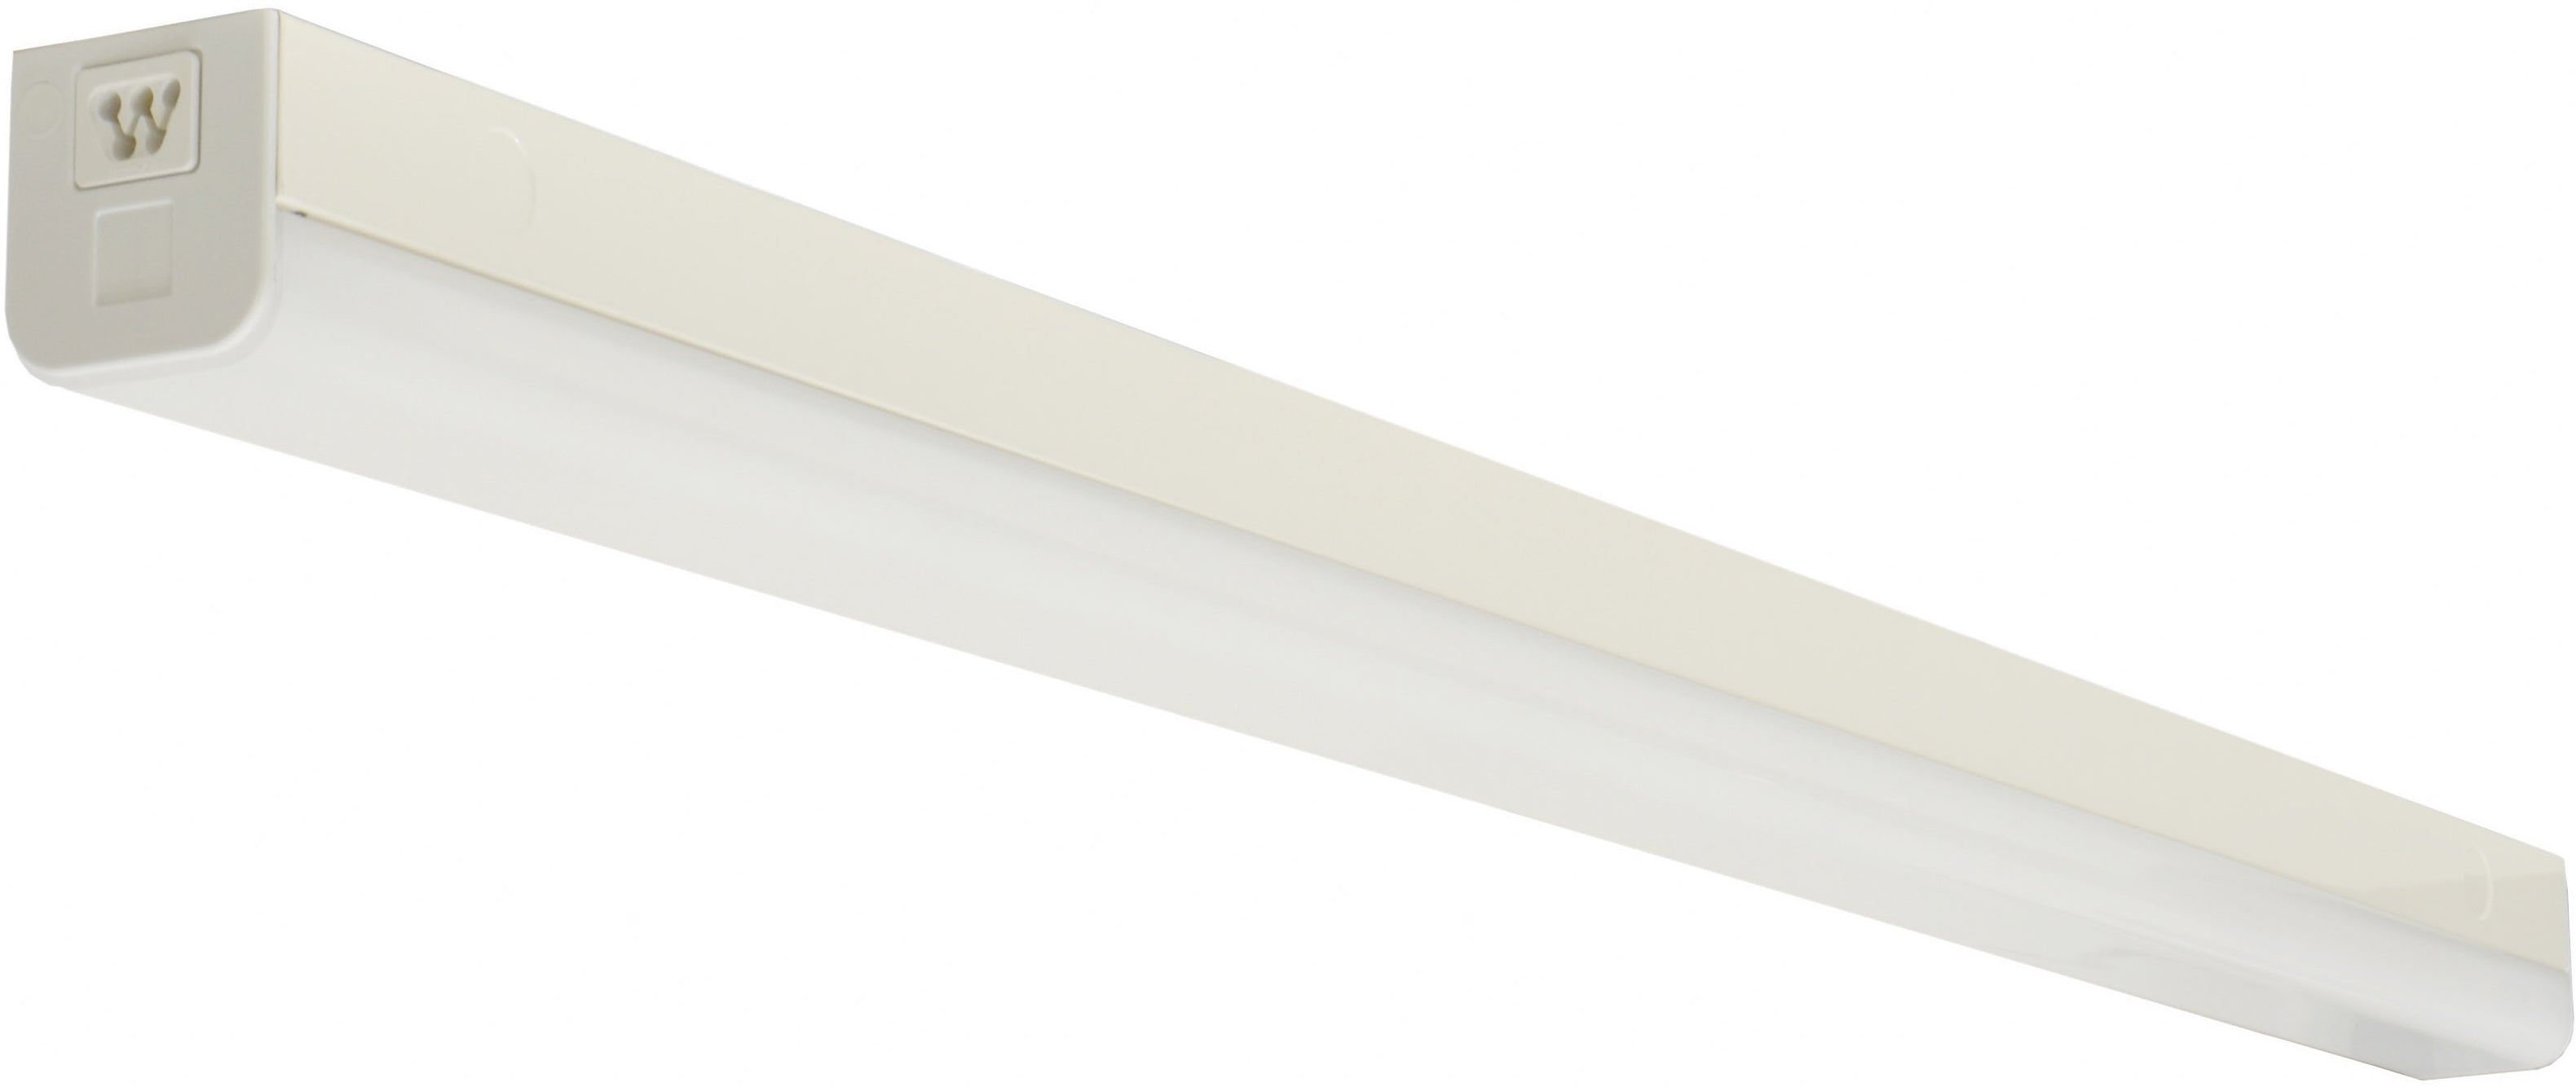 """Nuvo LED 38w 48"""" Slim Strip Light Fixture w/ Connectible in White Finish 5000k"""